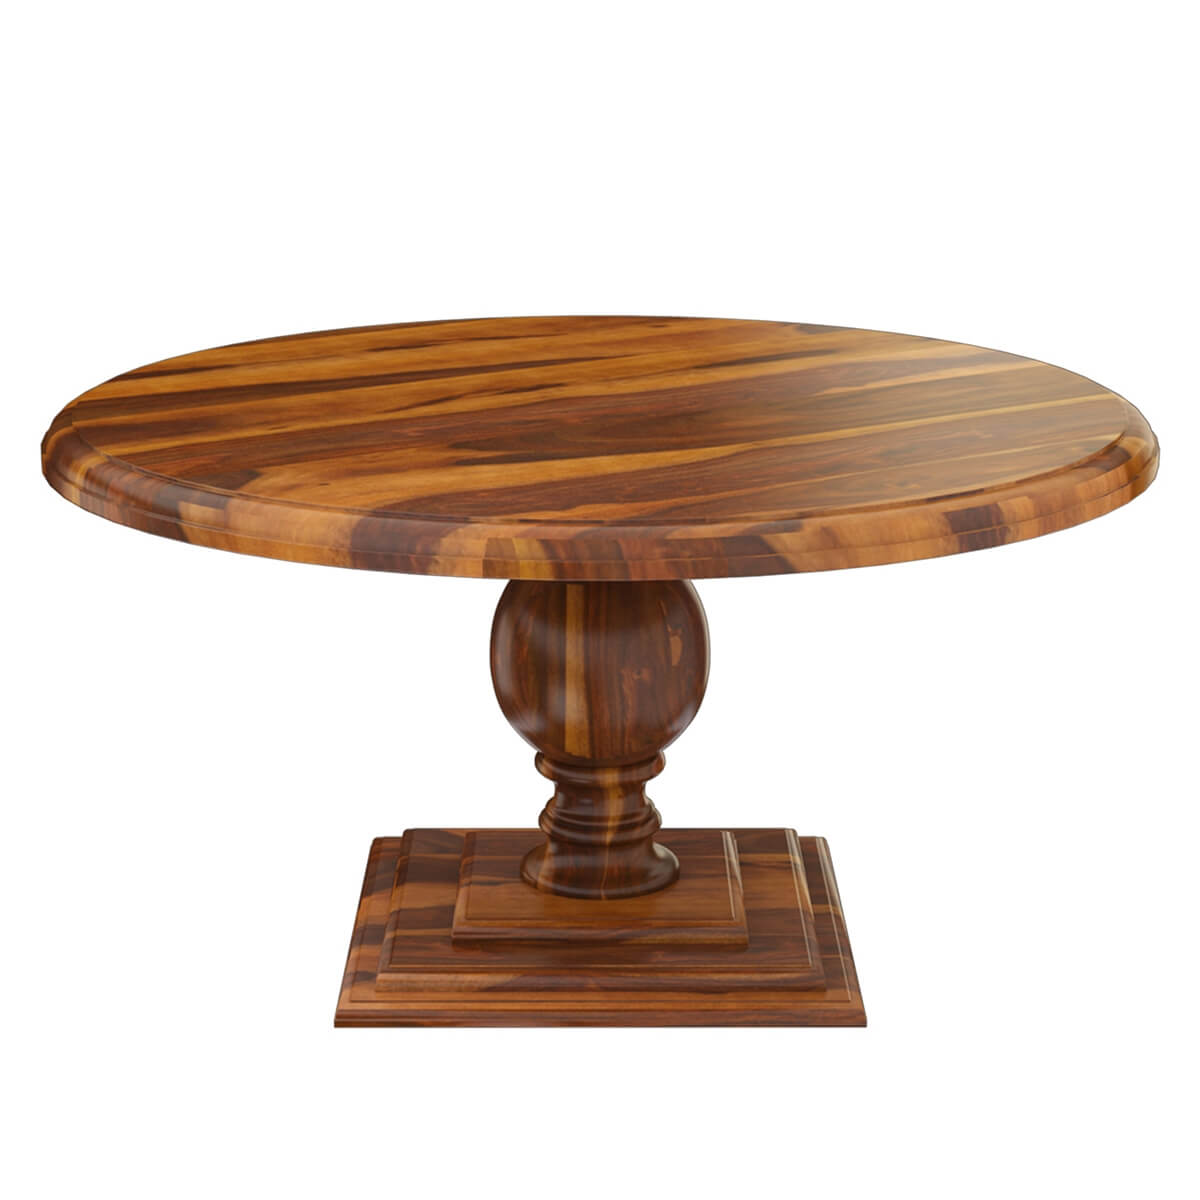 Smoke Circles Mango Wood Round Dining Table w Pedestal Base : 7190 from www.sierralivingconcepts.com size 1200 x 1200 jpeg 101kB